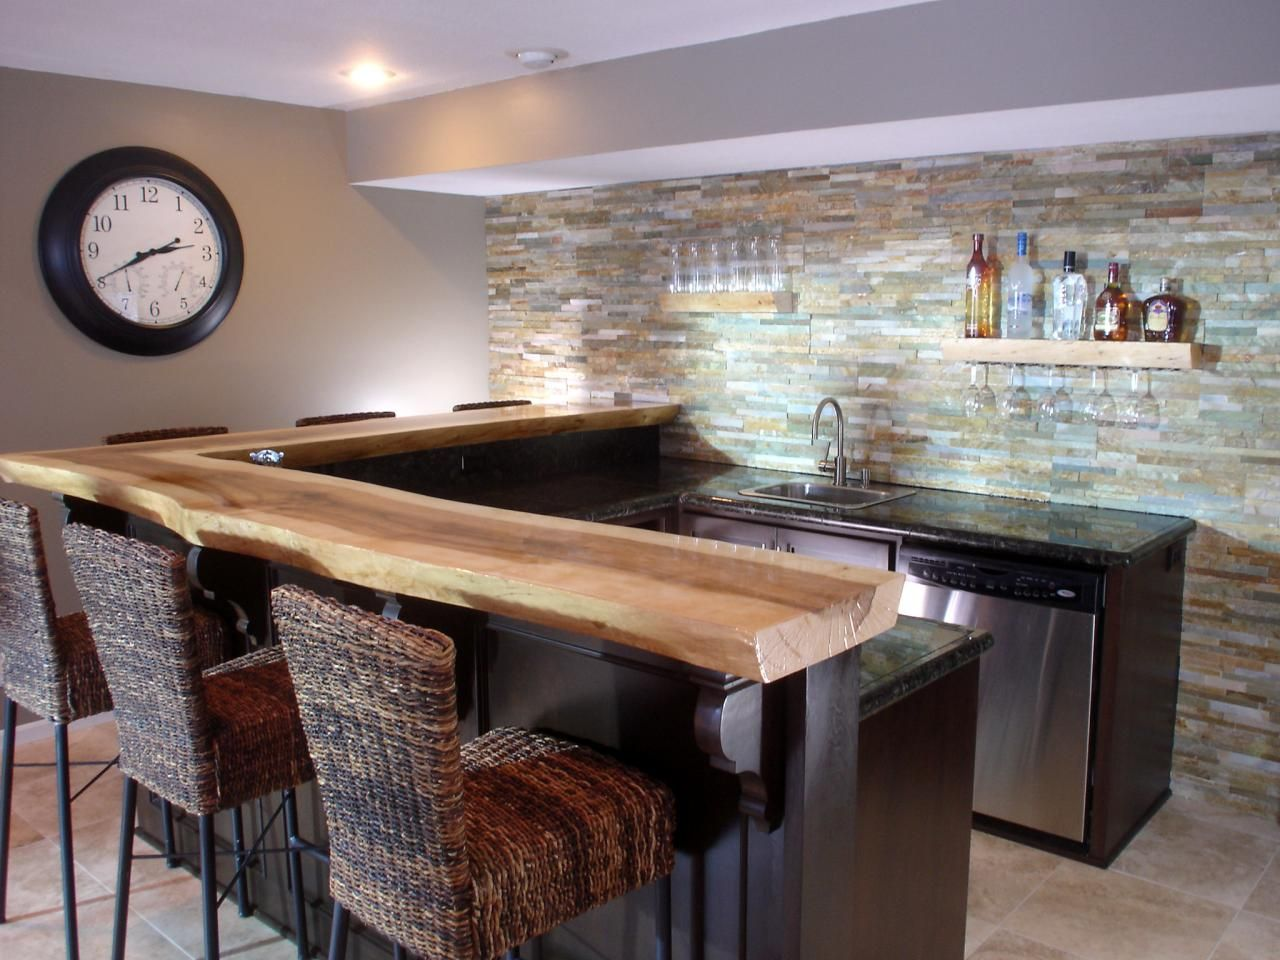 Home Bar Ideas: 89 Design Options